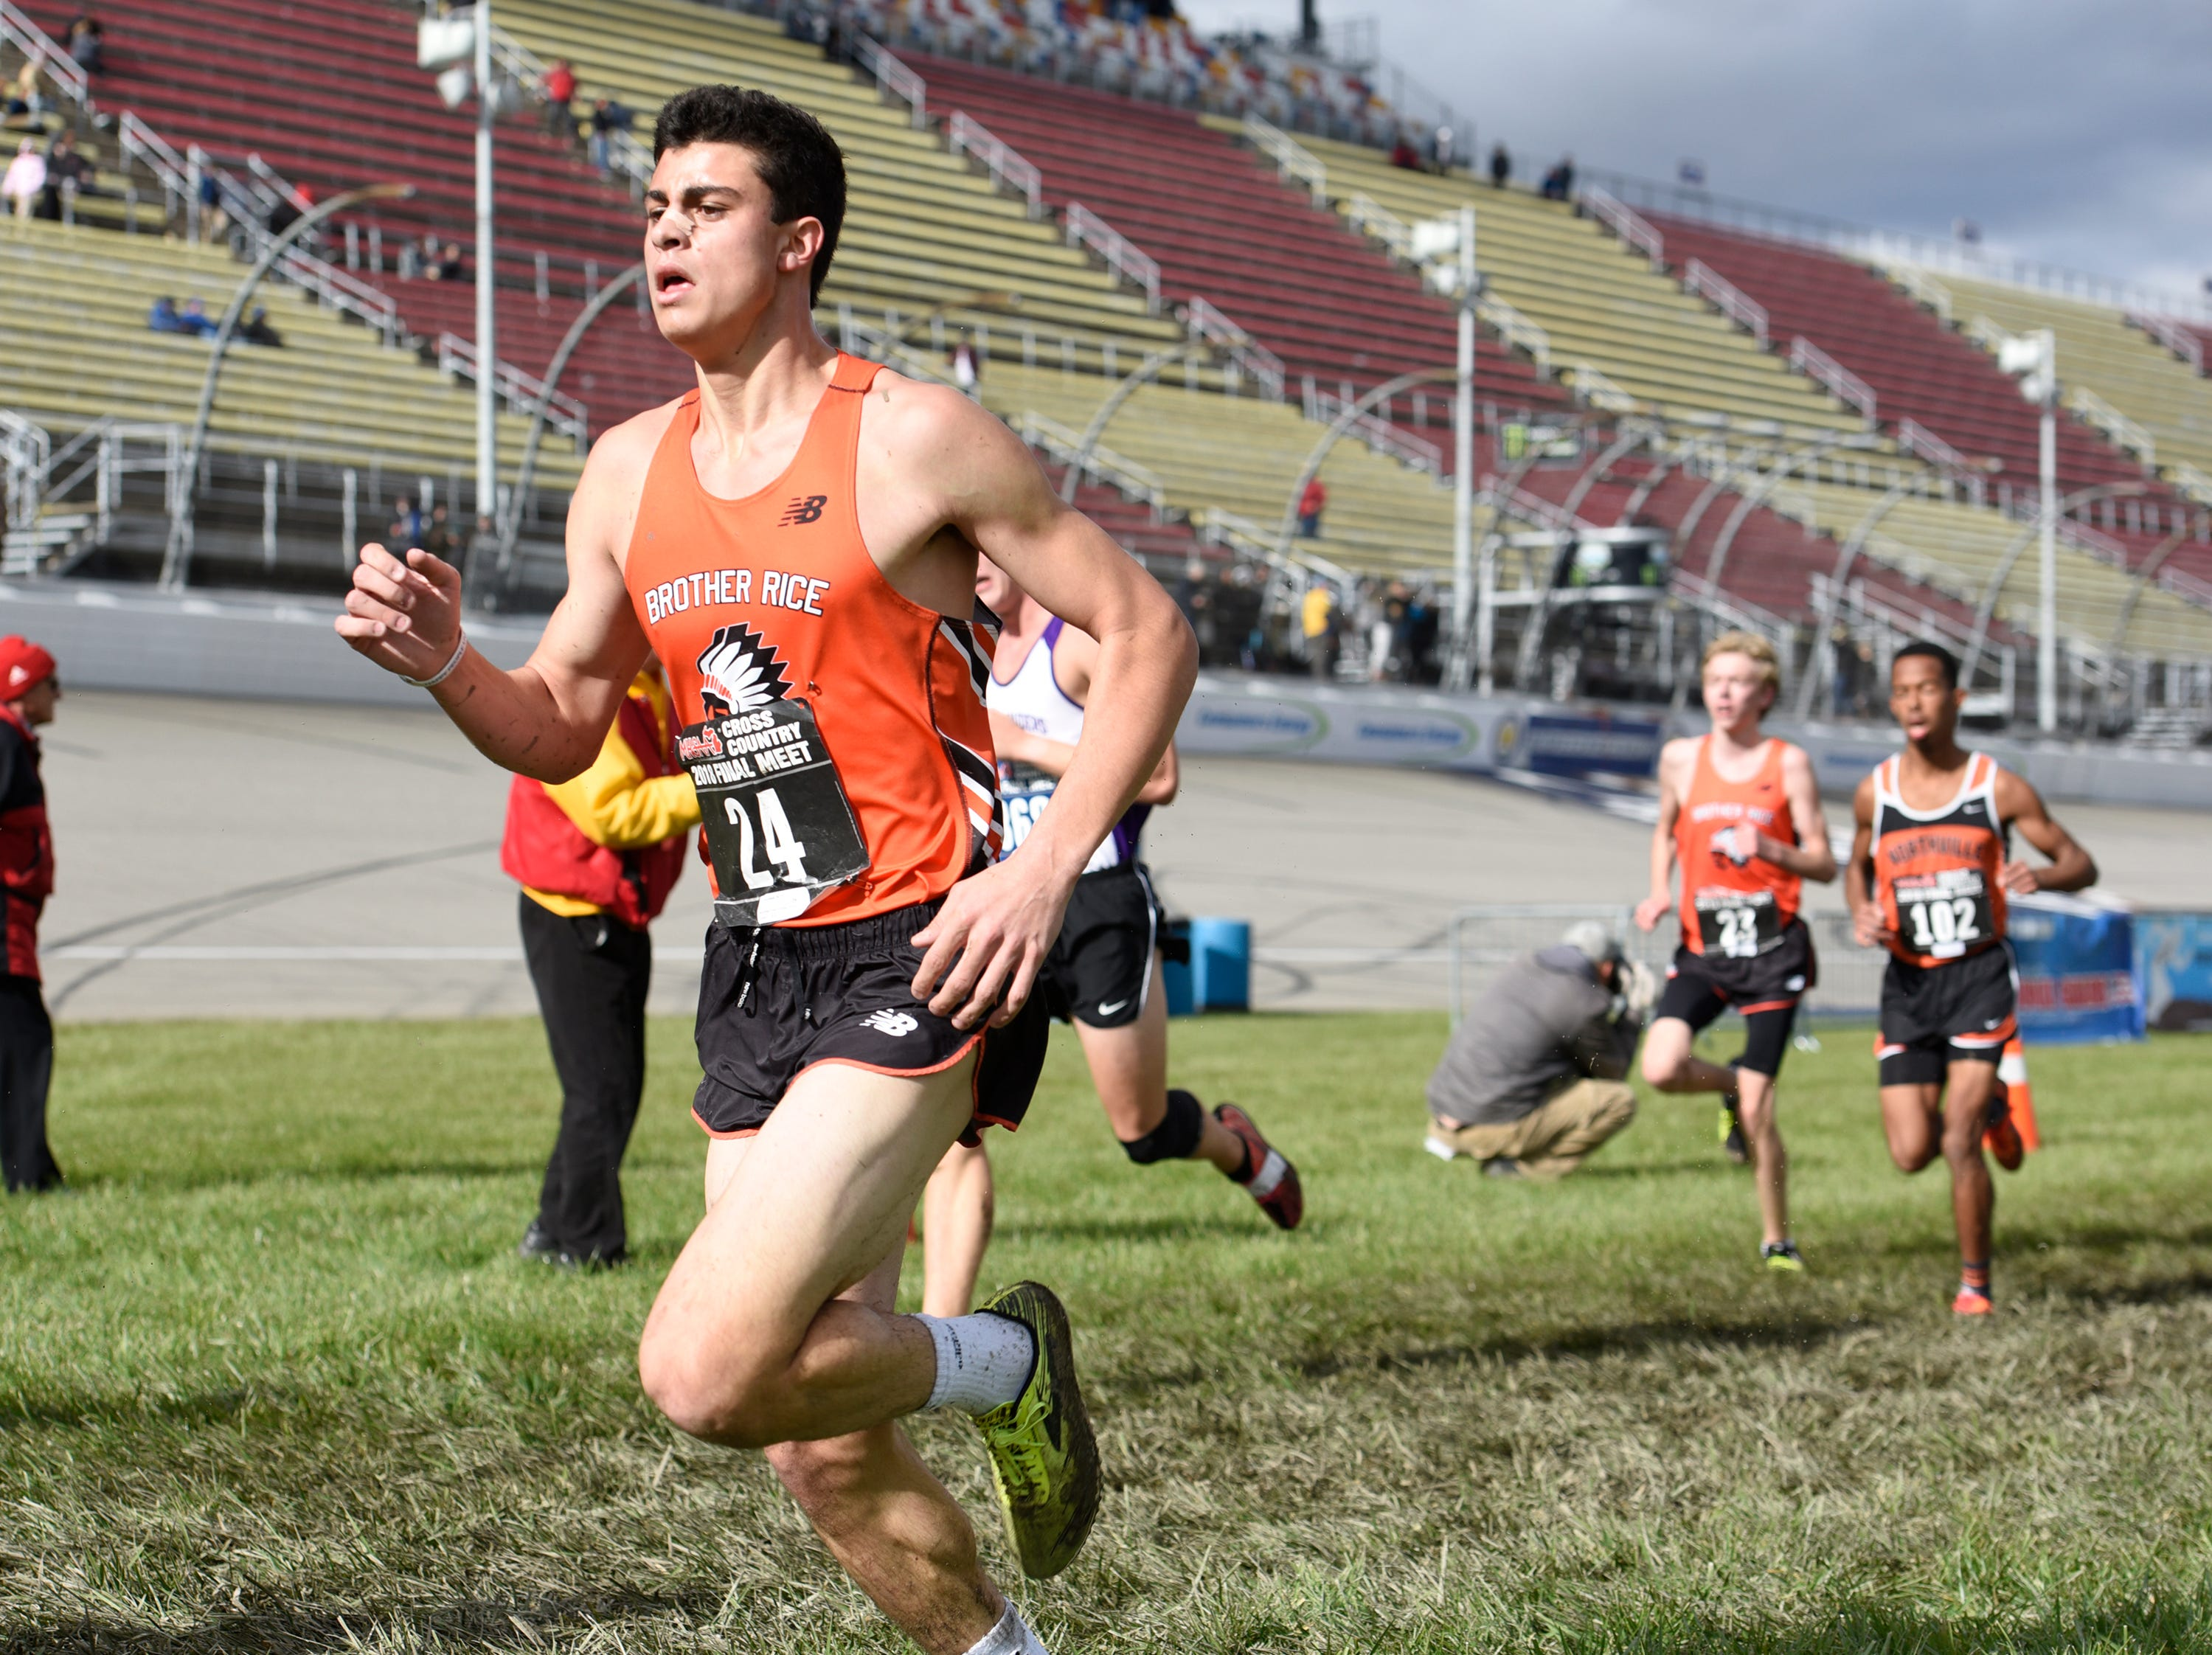 Brother Rice's Jacob Hannawa during the Division 1 2018 cross country finals at Michigan International Speedway.